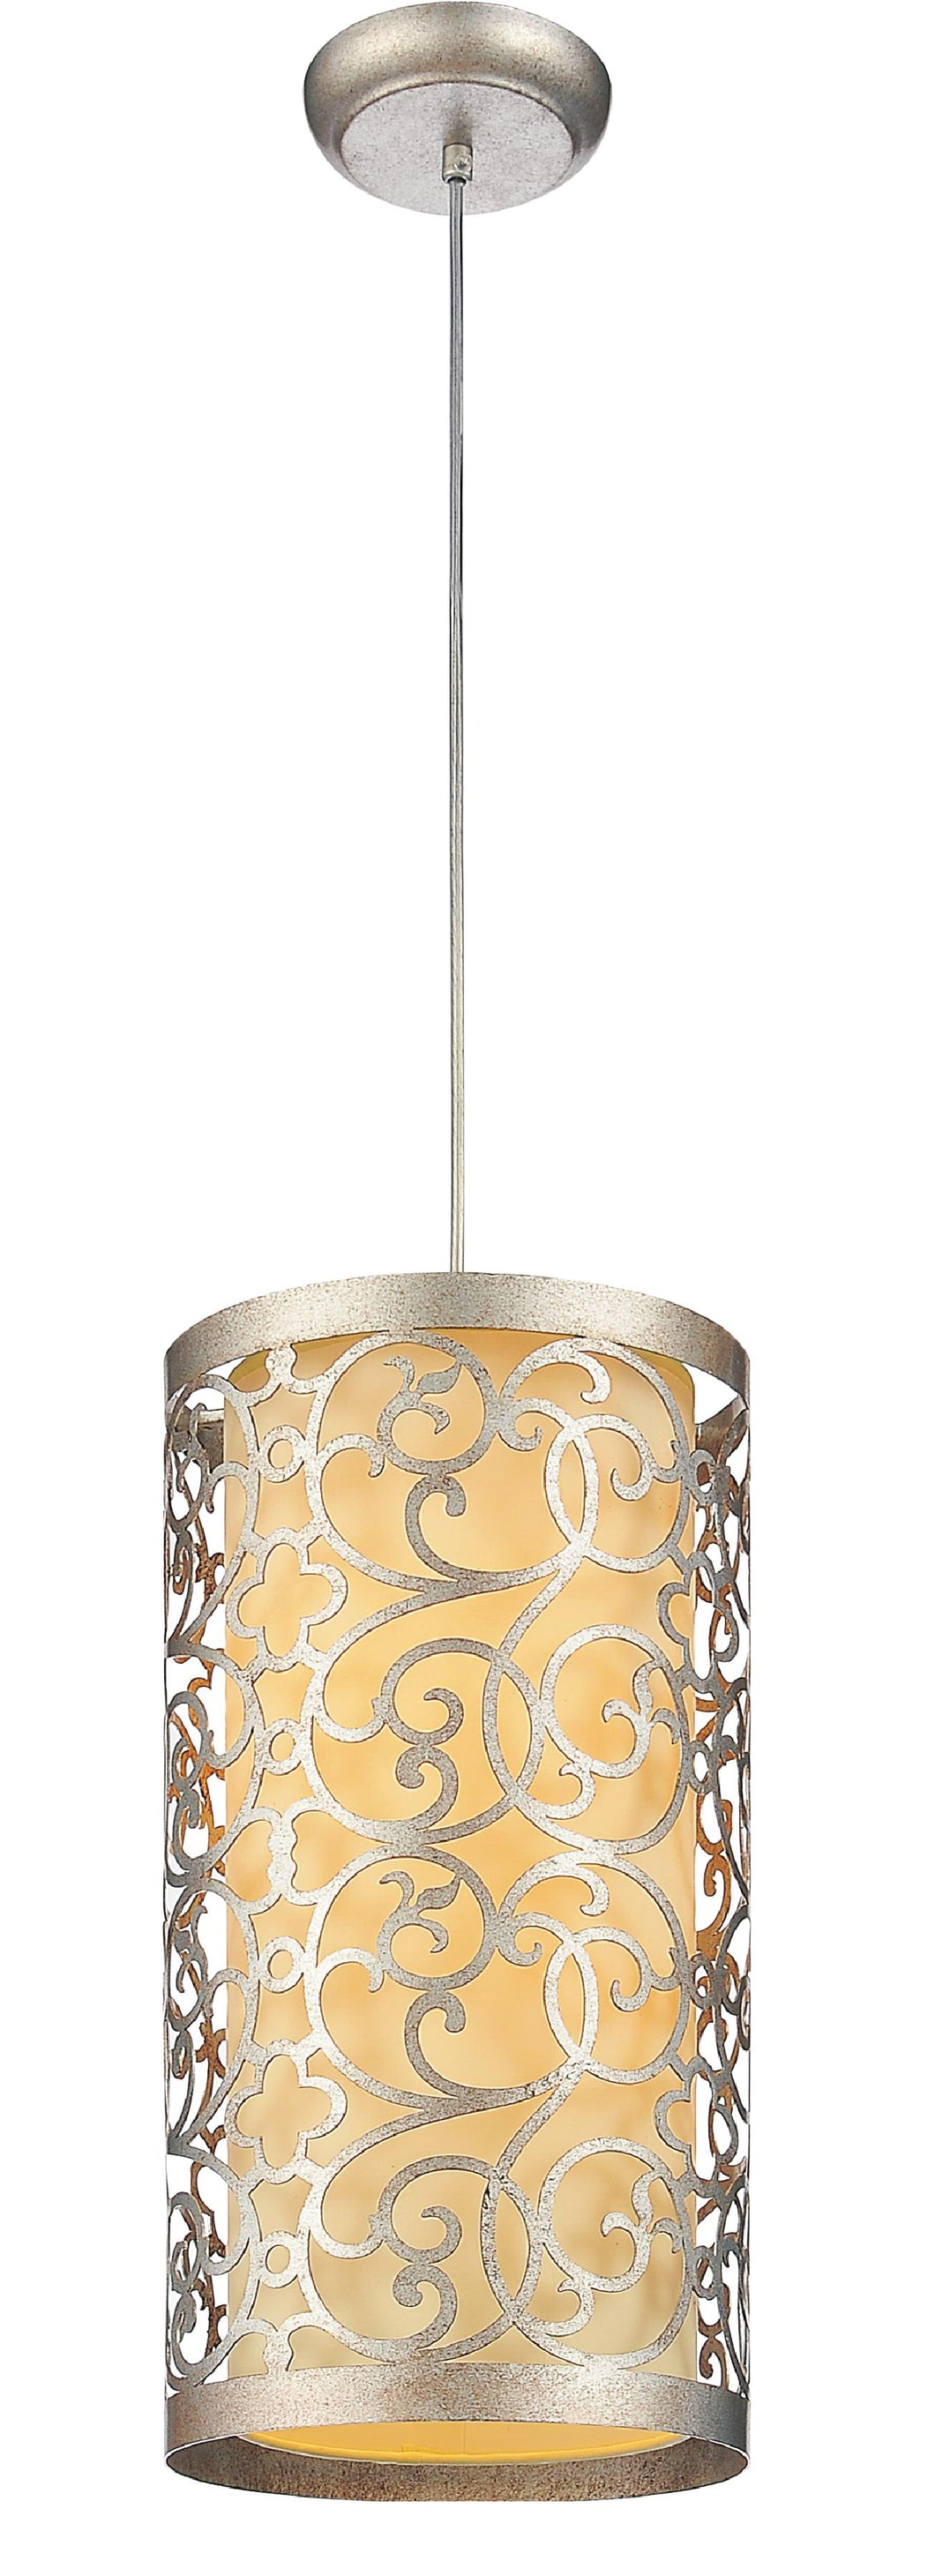 2 Light Drum Shade Mini Pendant with Rubbed Silver finish